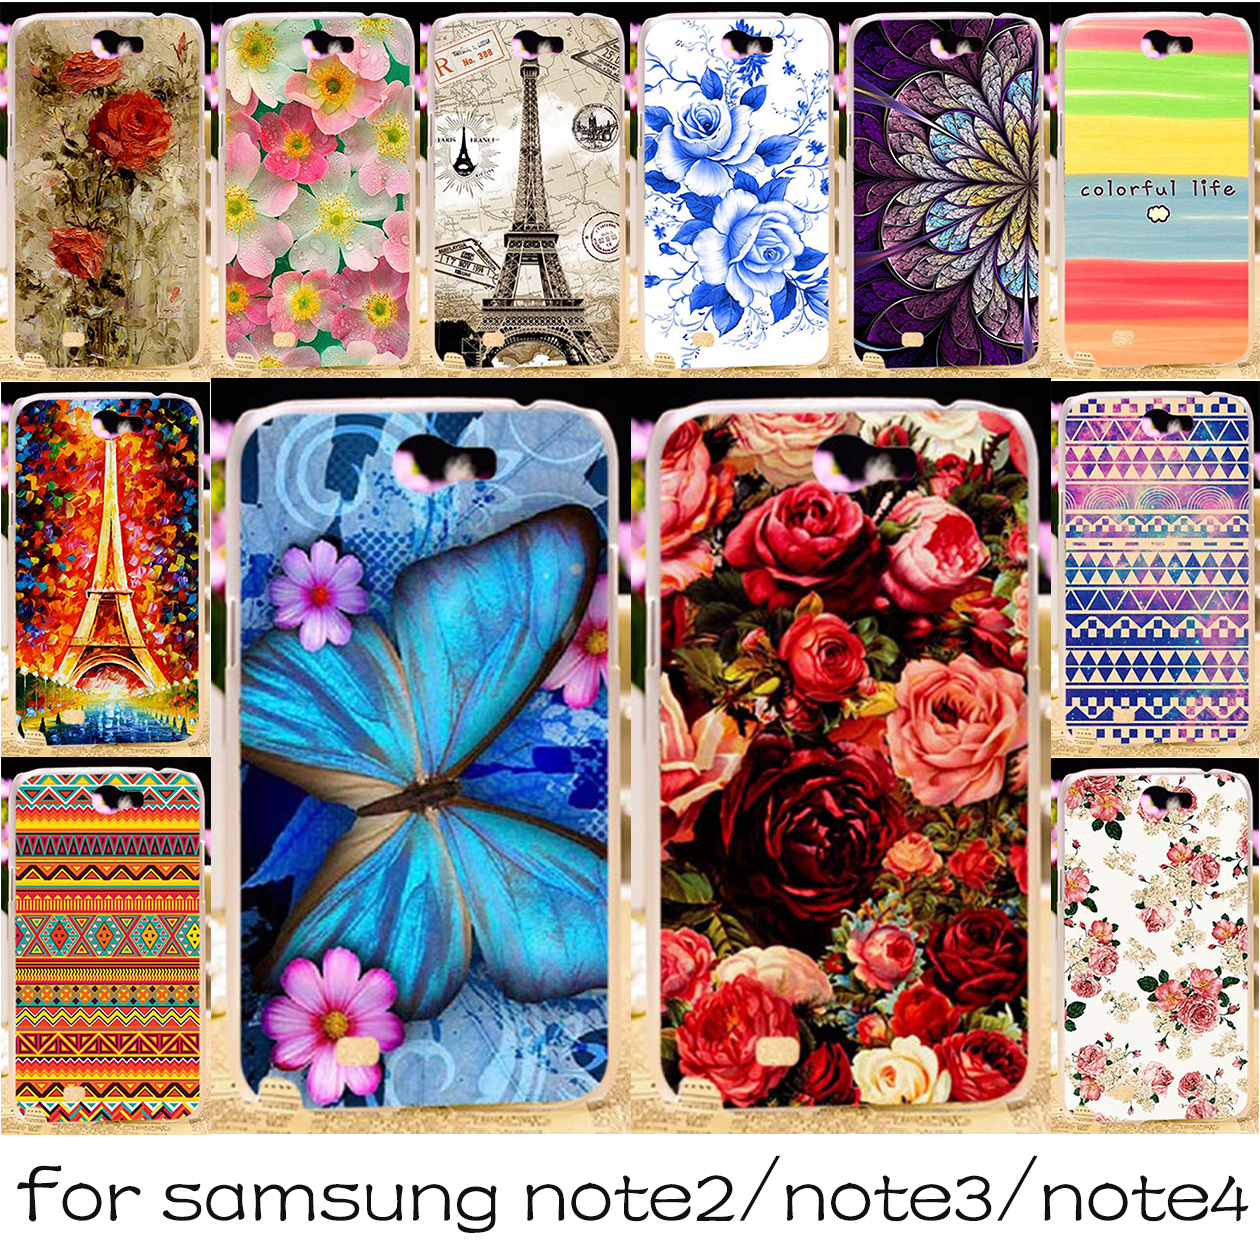 Silicone OR Plastic Mobile Phone Case For Samsung Galaxy Note 2 3 4 N7100 N9000 N9100 Note2 Note3 Note4 Cover HousingShell